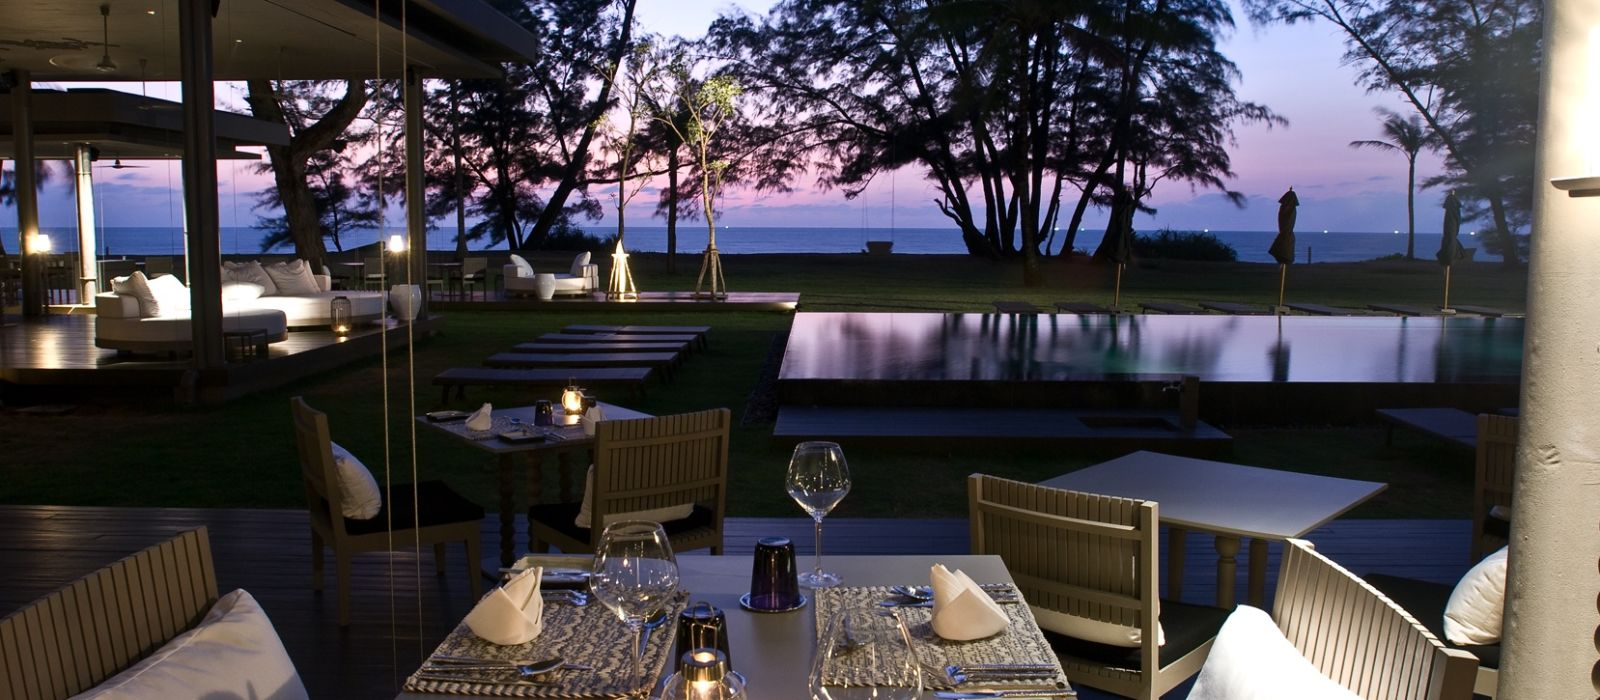 Sala phuket resort spa hotel in thailand enchanting for Hotel sala phuket tailandia